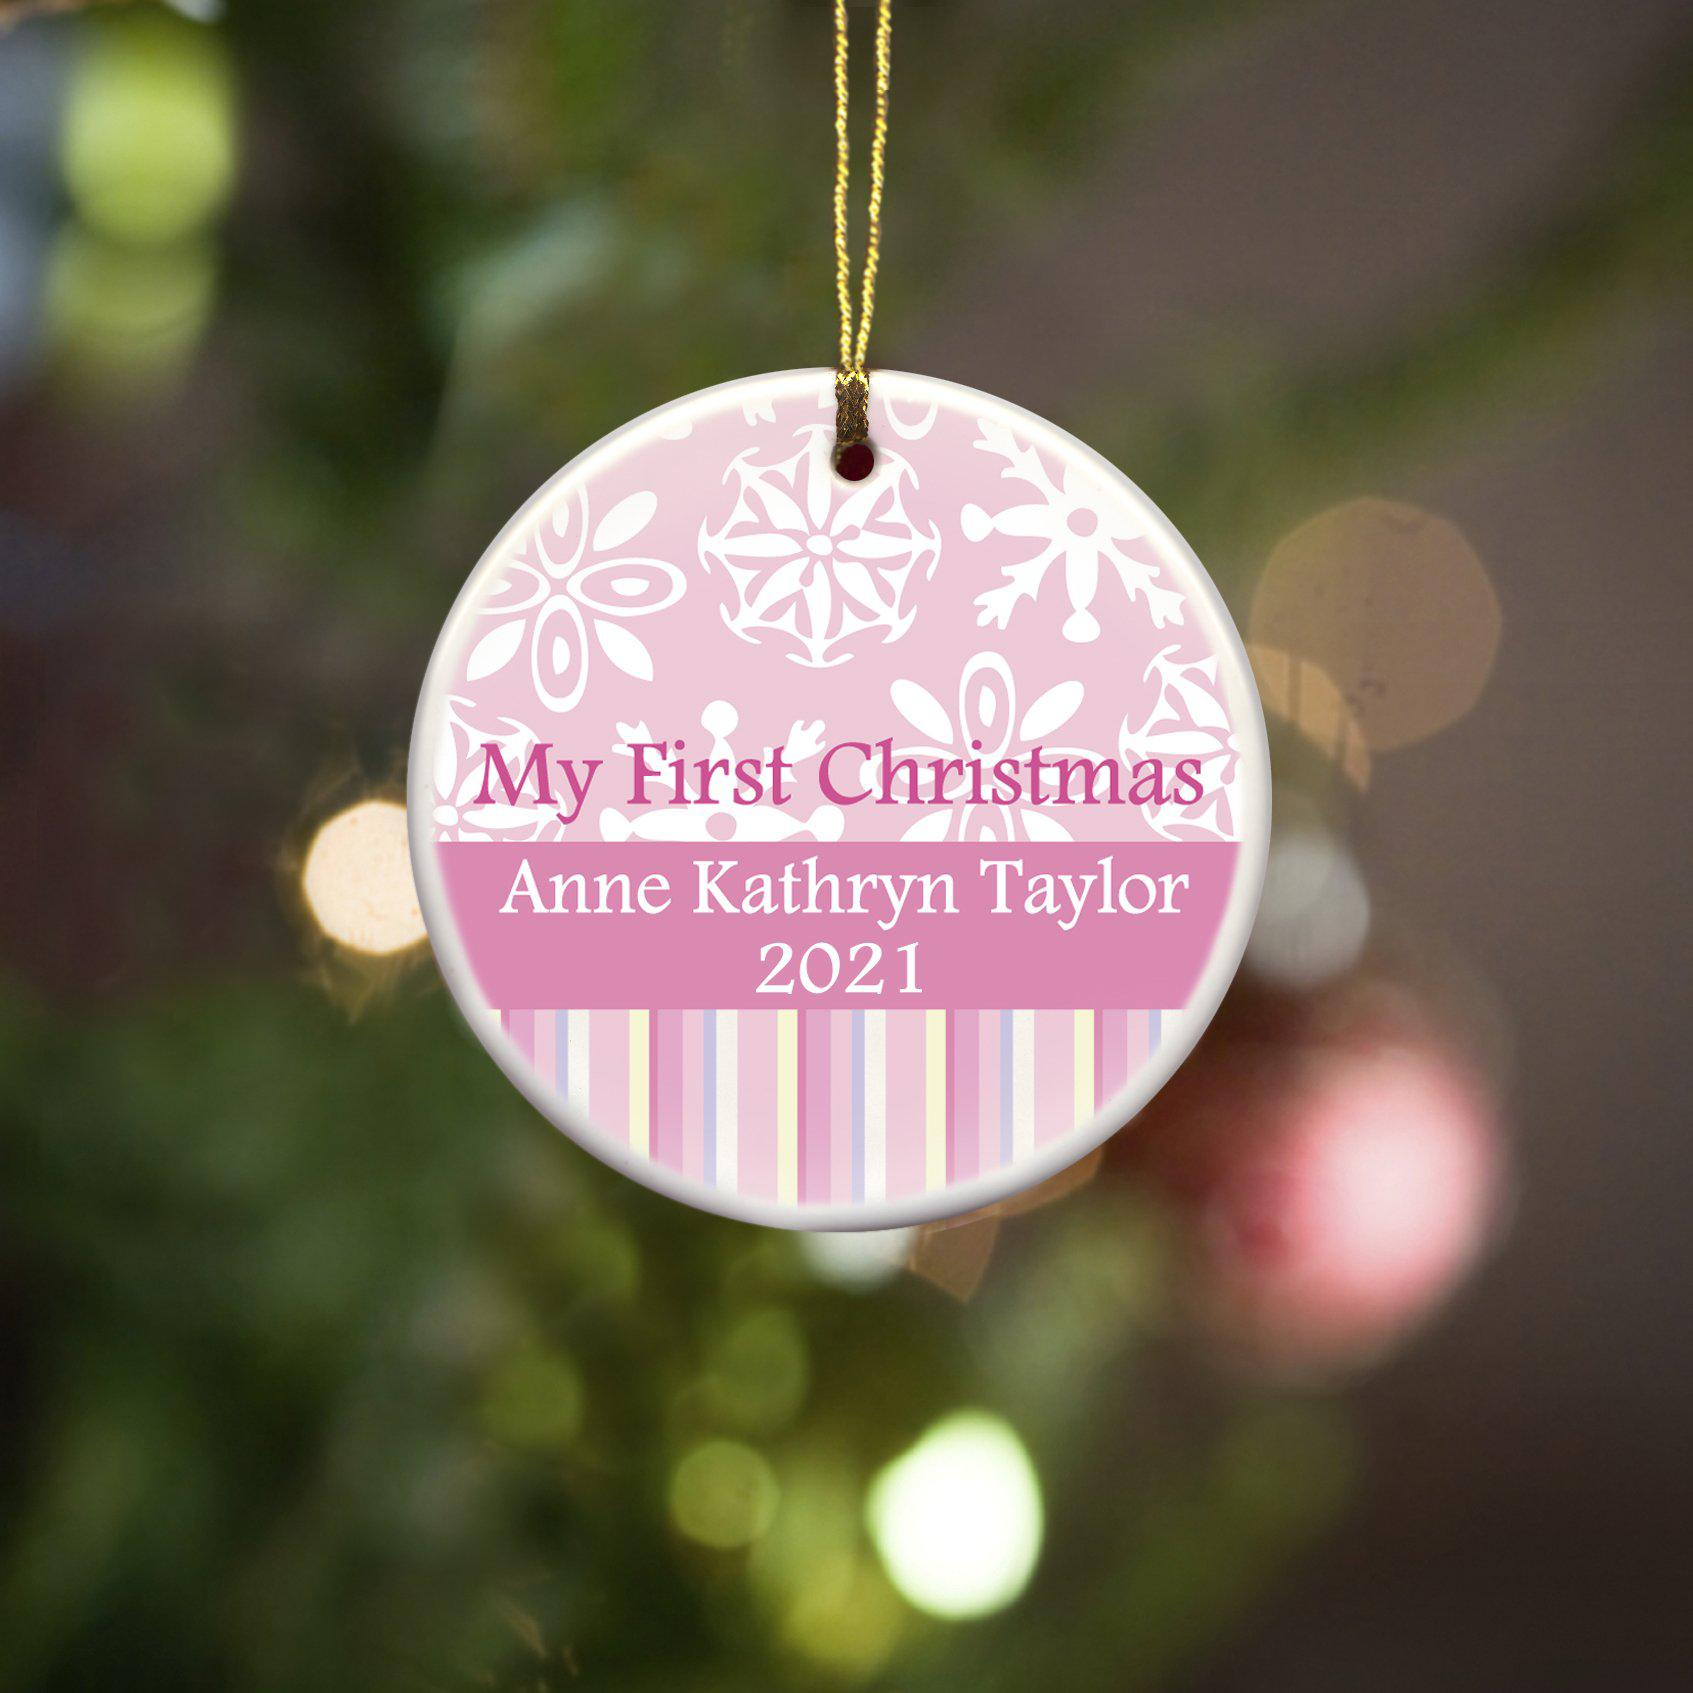 Personalized-Ornament-Christmas-Ornament-My-First-Christmas